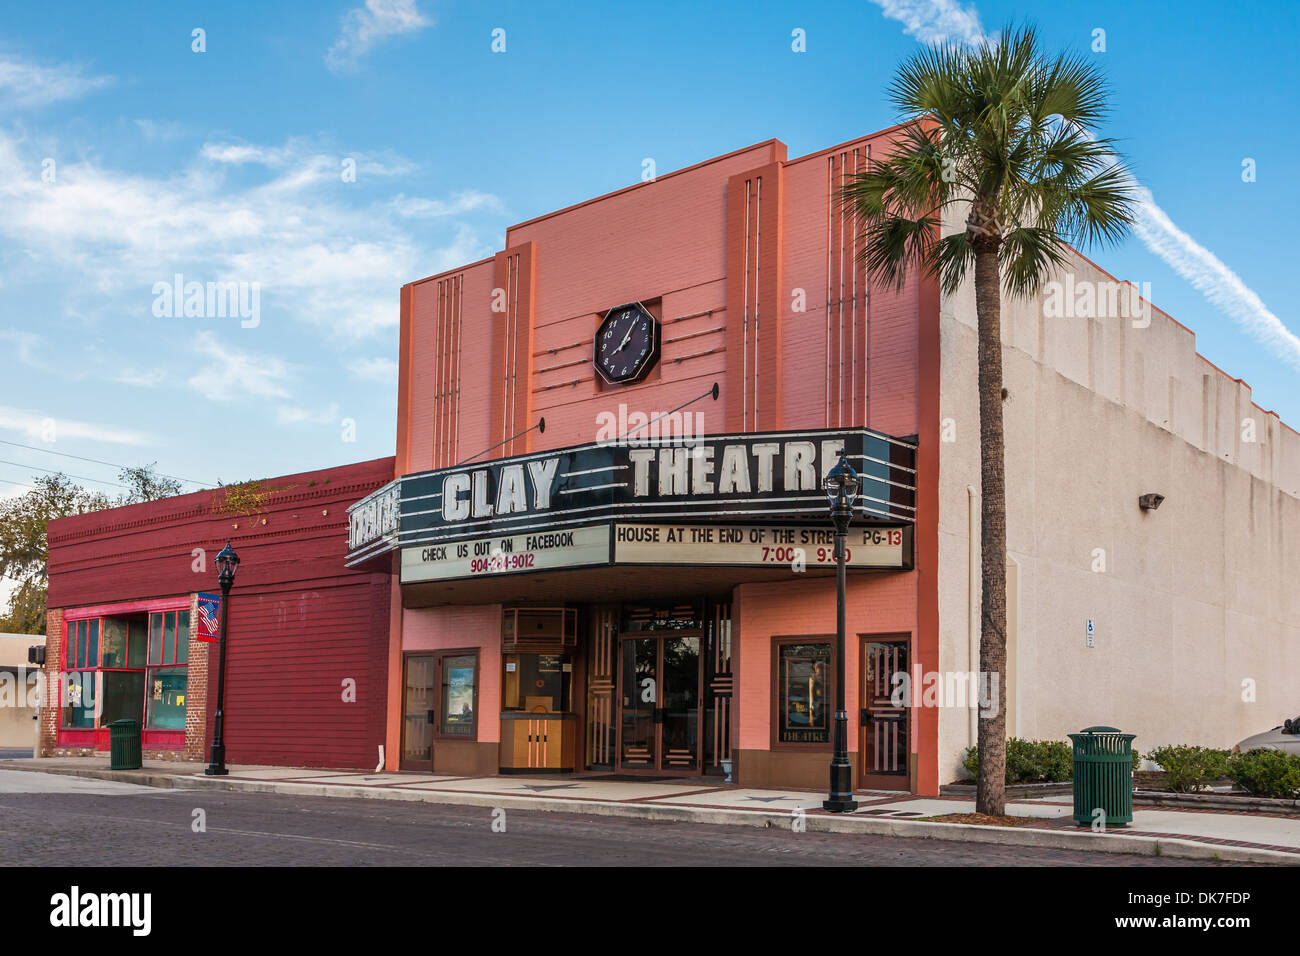 Clay theatre in historic downtown green cove springs florida stock image